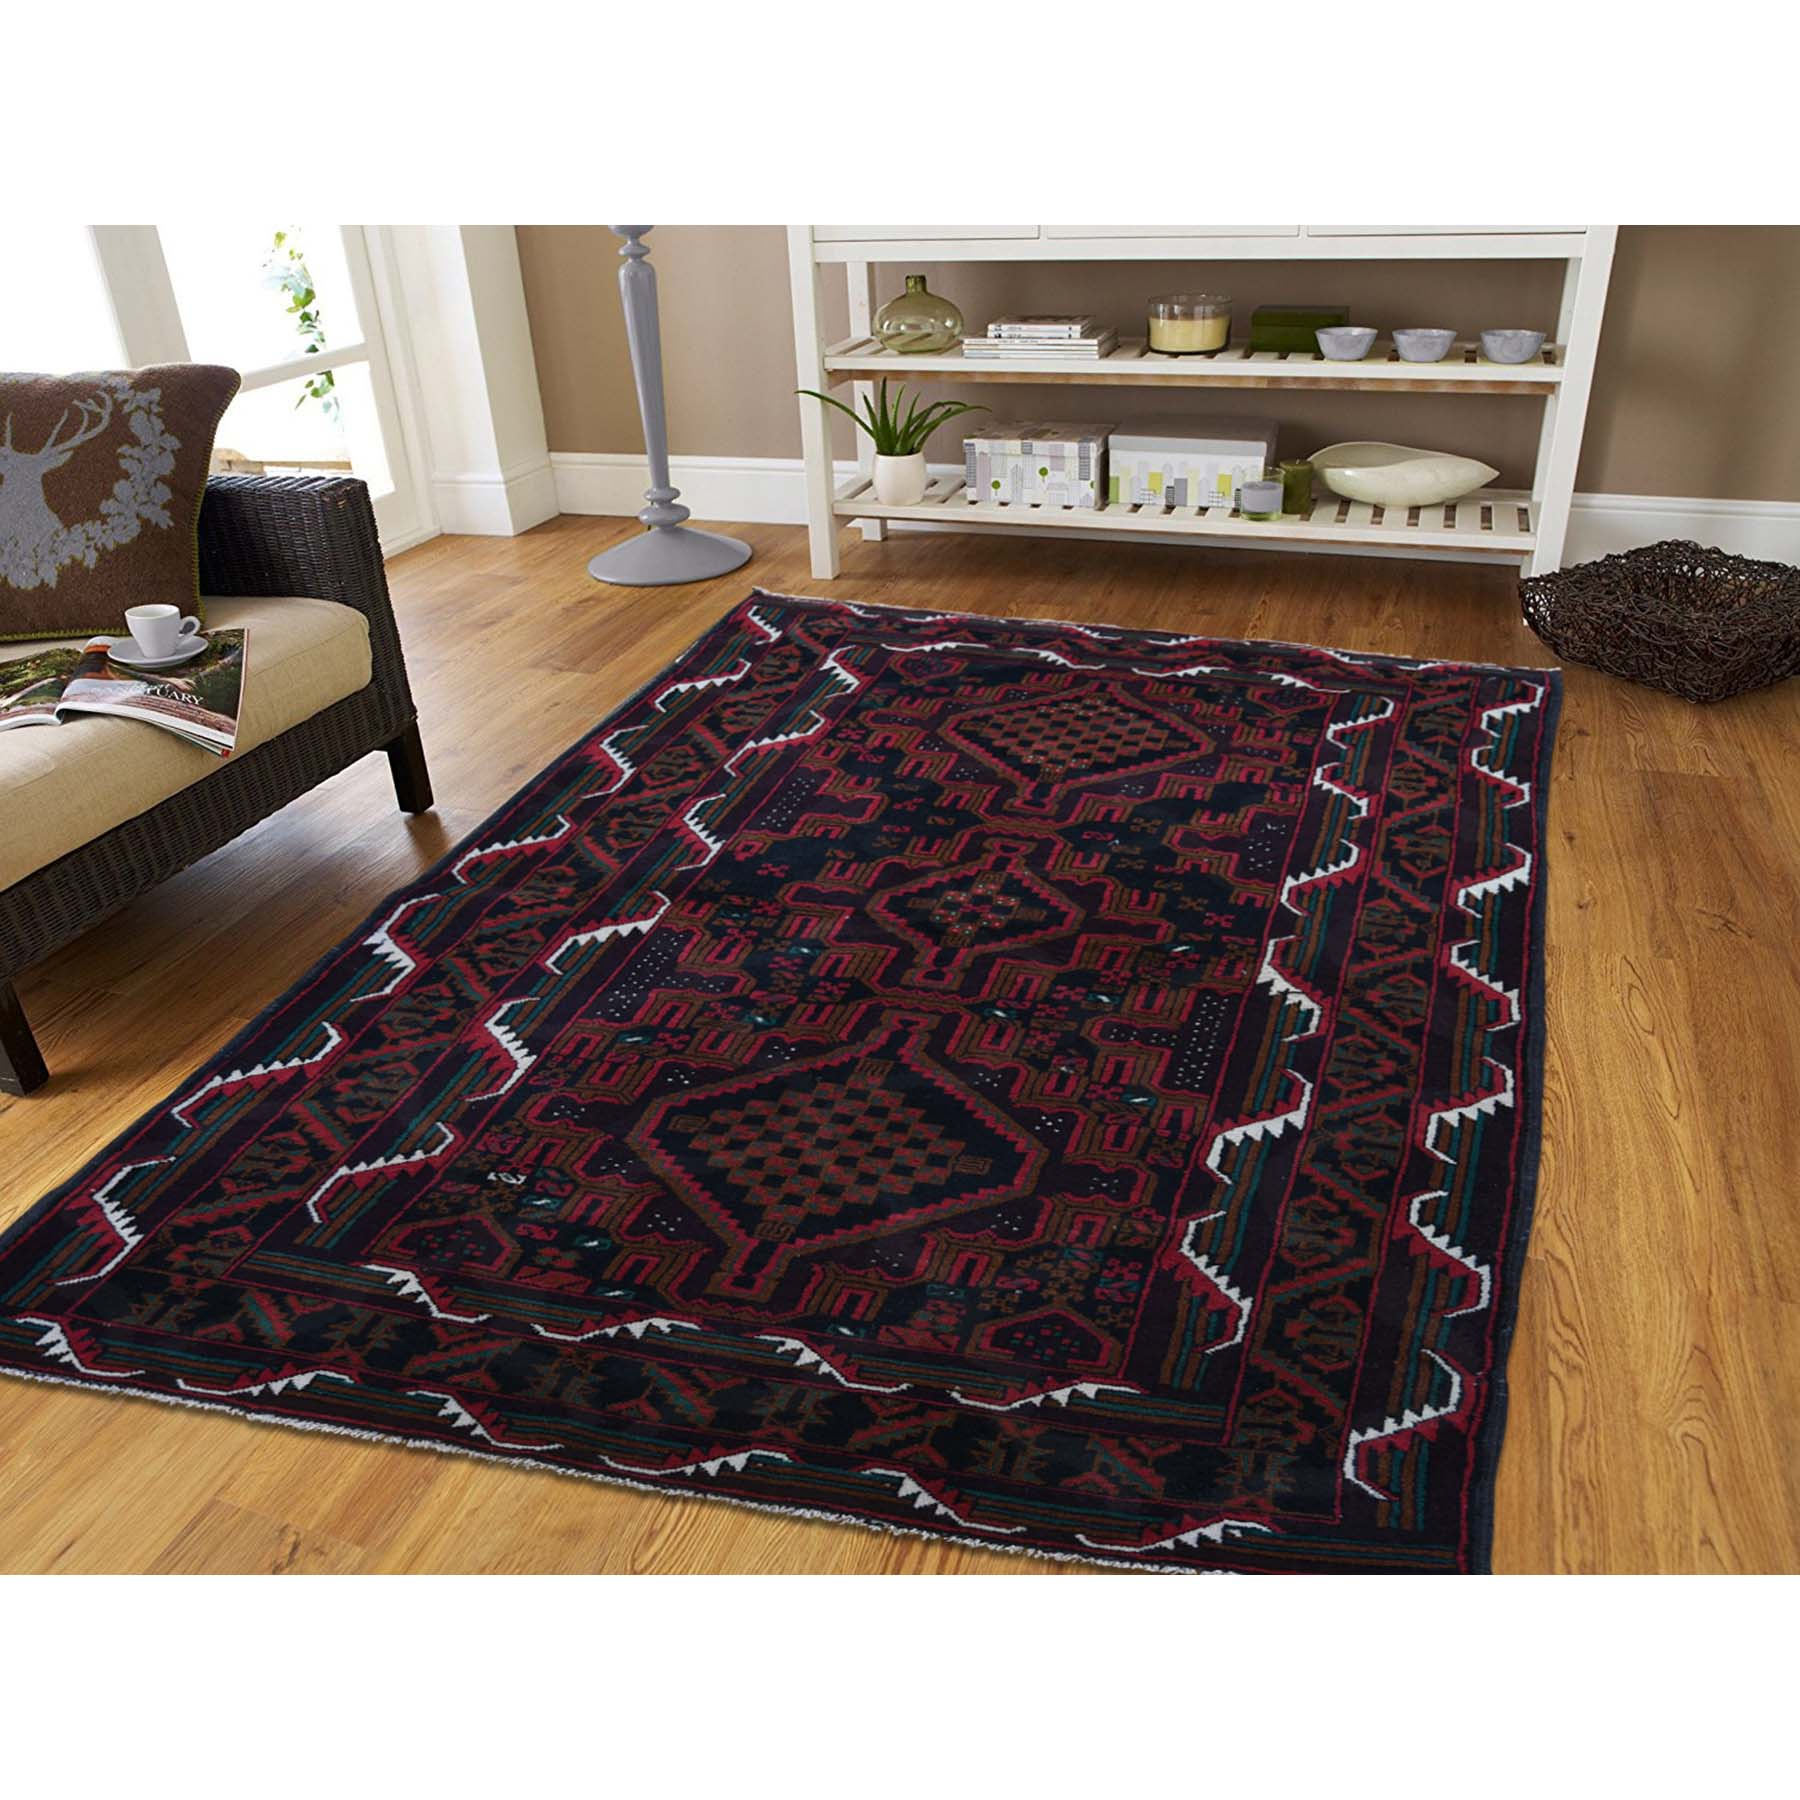 3-10 x6-10  Pure Wool Tribal and Geometric Afghan Baluch Hand-Knotted Oriental Rug